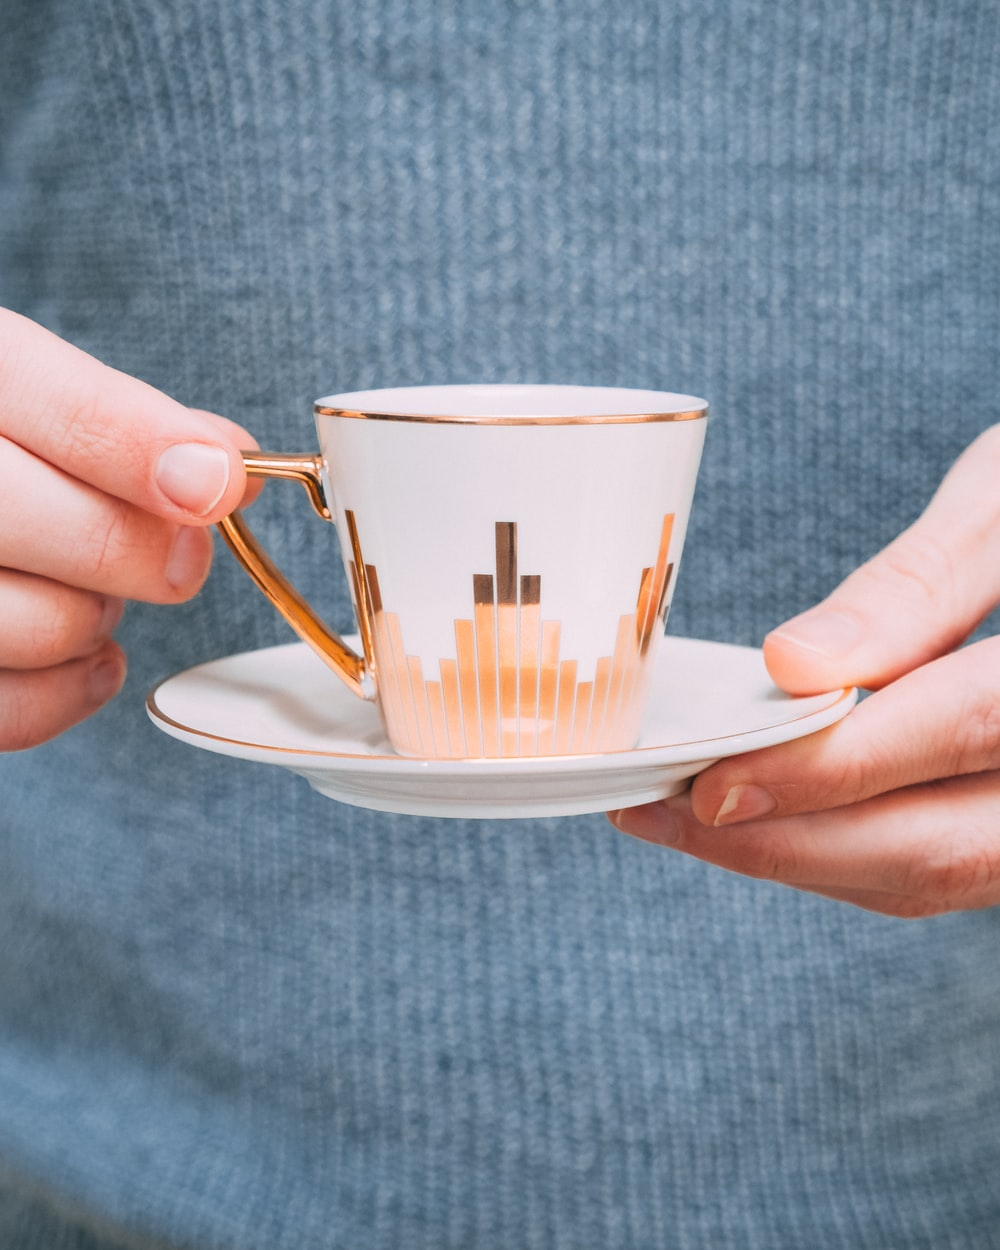 person holding white-and-gold ceramic teacup with saucer